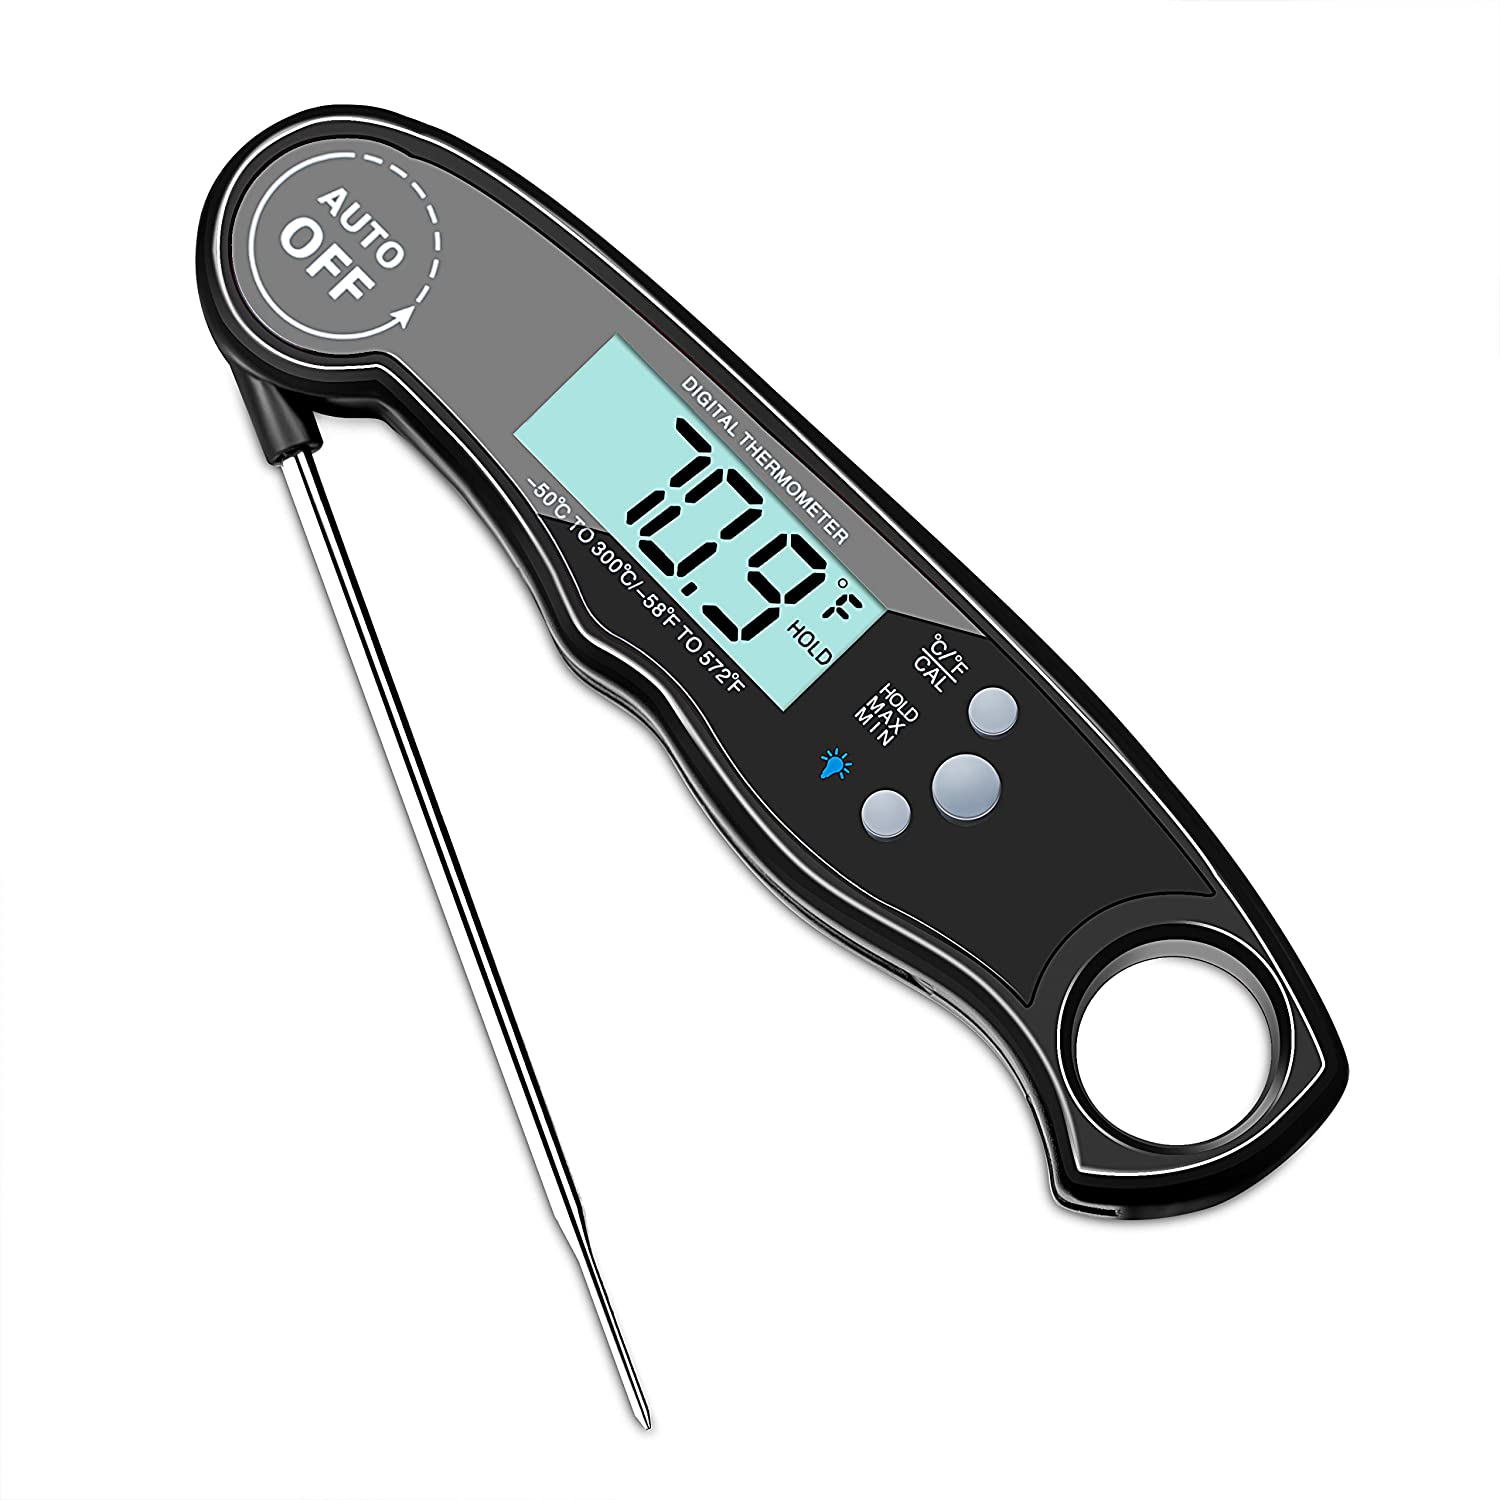 Instant Read Digital Food Thermometer with Bright Backlight LCD Screen, Kitchen Smart Waterproof Cooking Meat Thermometer By Bestmo (Black)